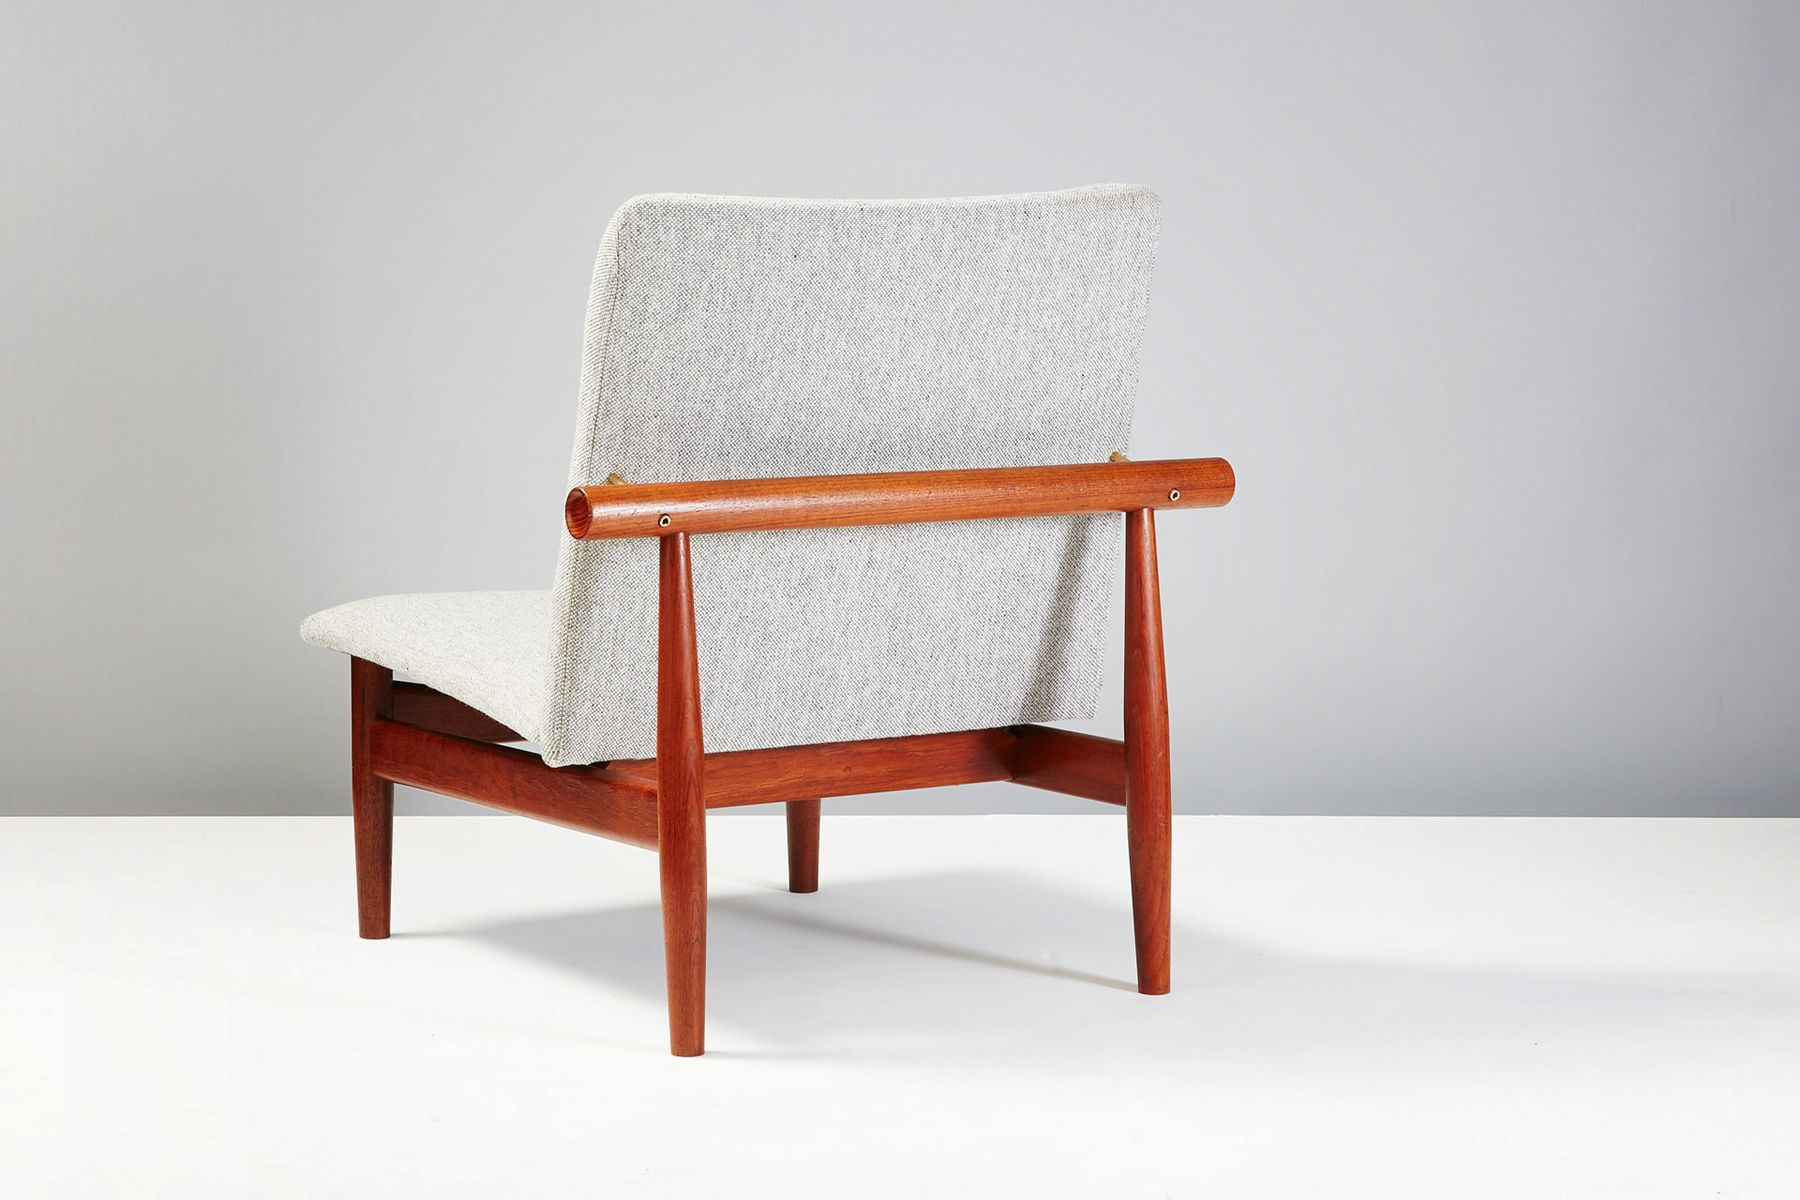 finn juhl chair uk neutral posture manual model 137 japan by for france and søn 1953